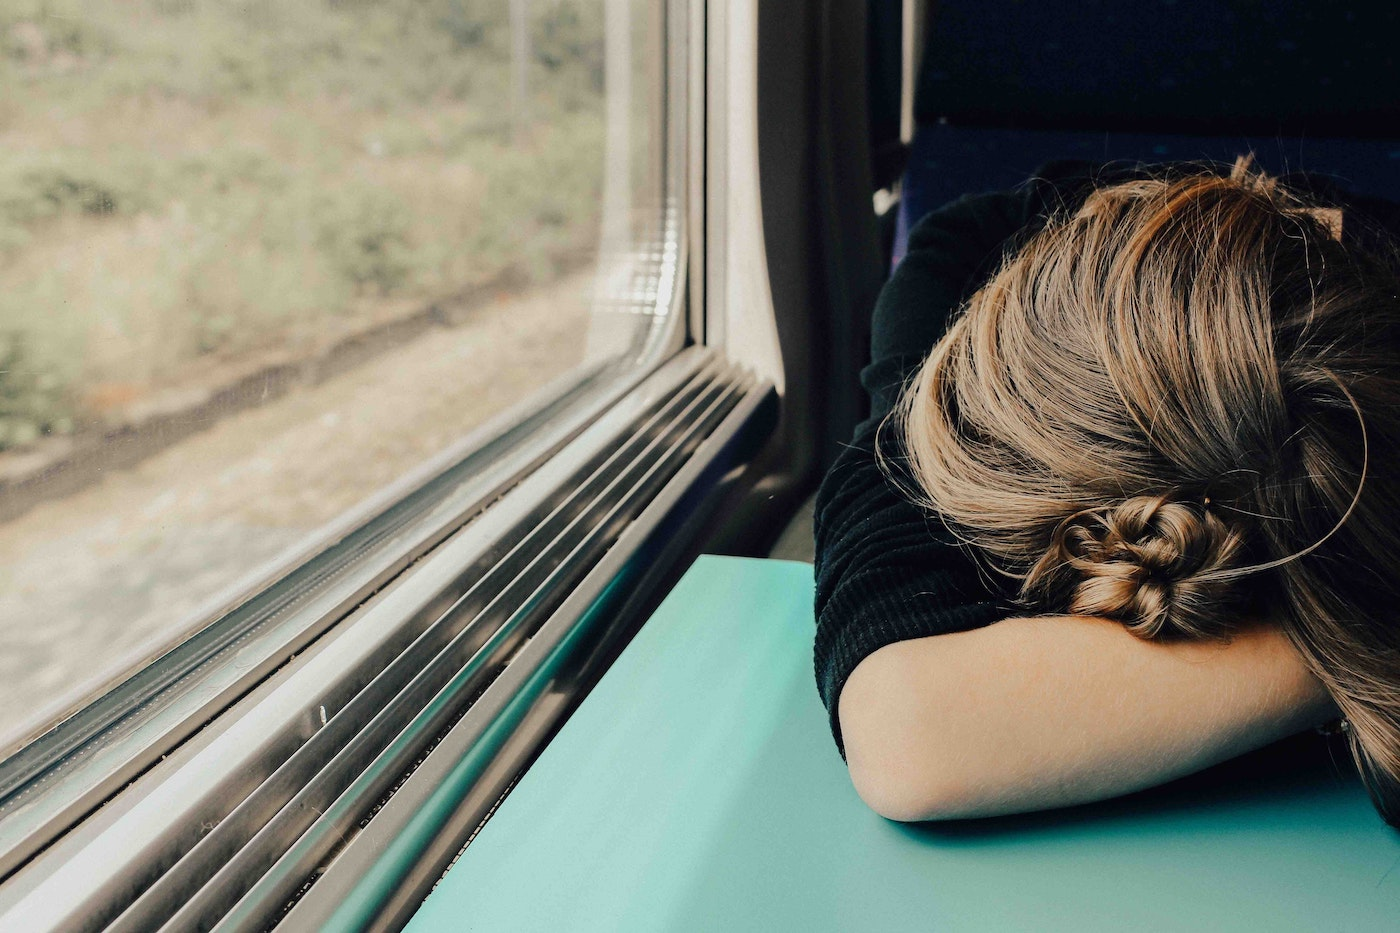 Lady on train feeling burned out.